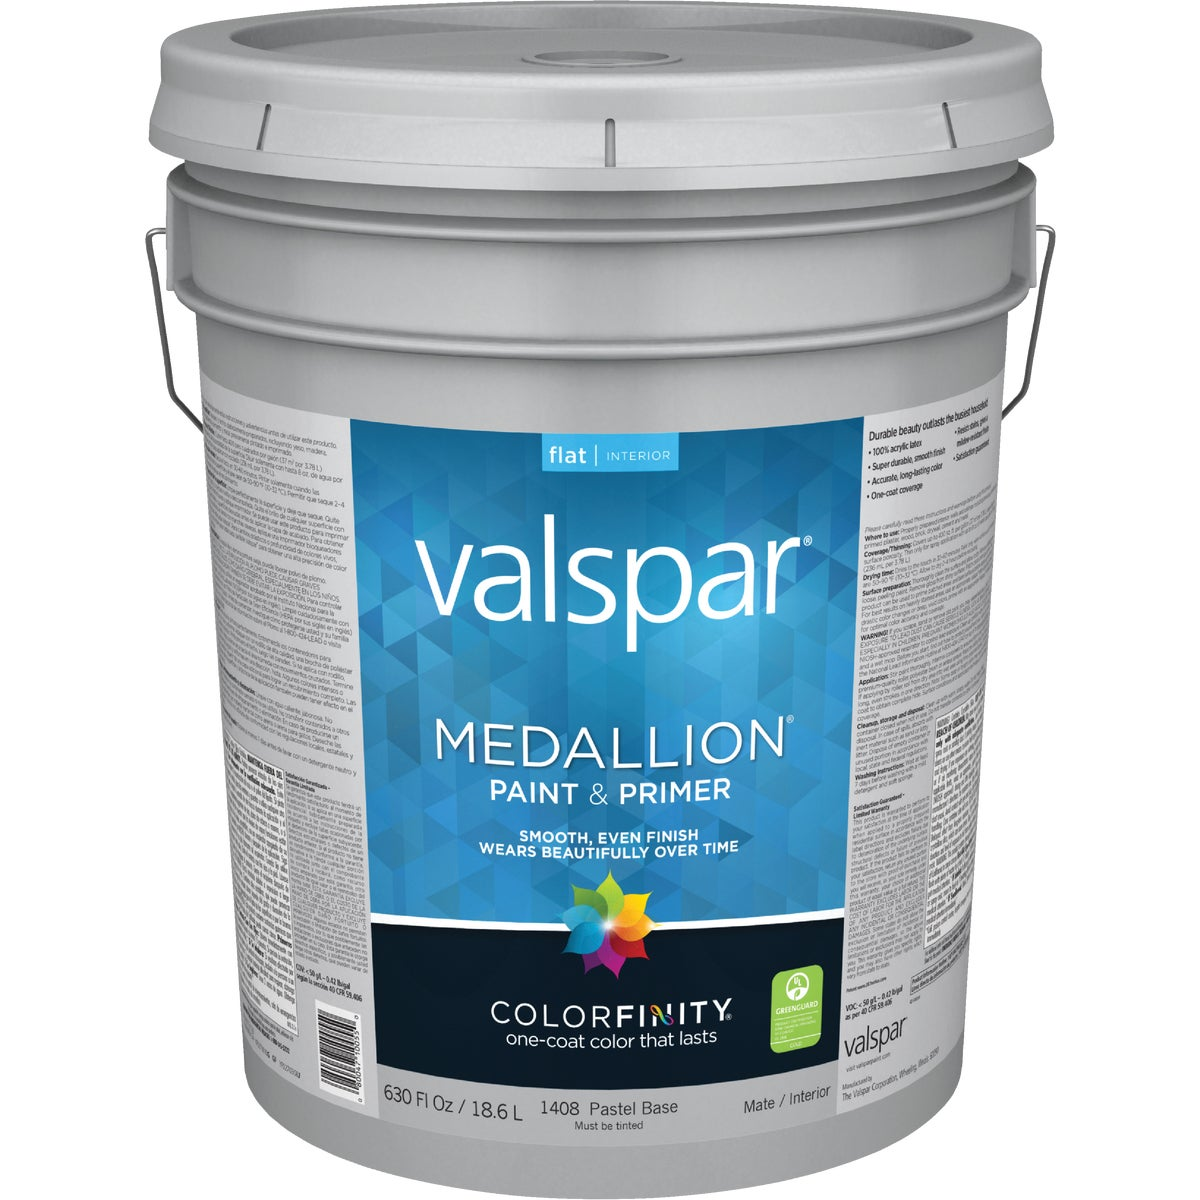 INT FLAT PASTEL BS PAINT - 027.0001408.008 by Valspar Corp